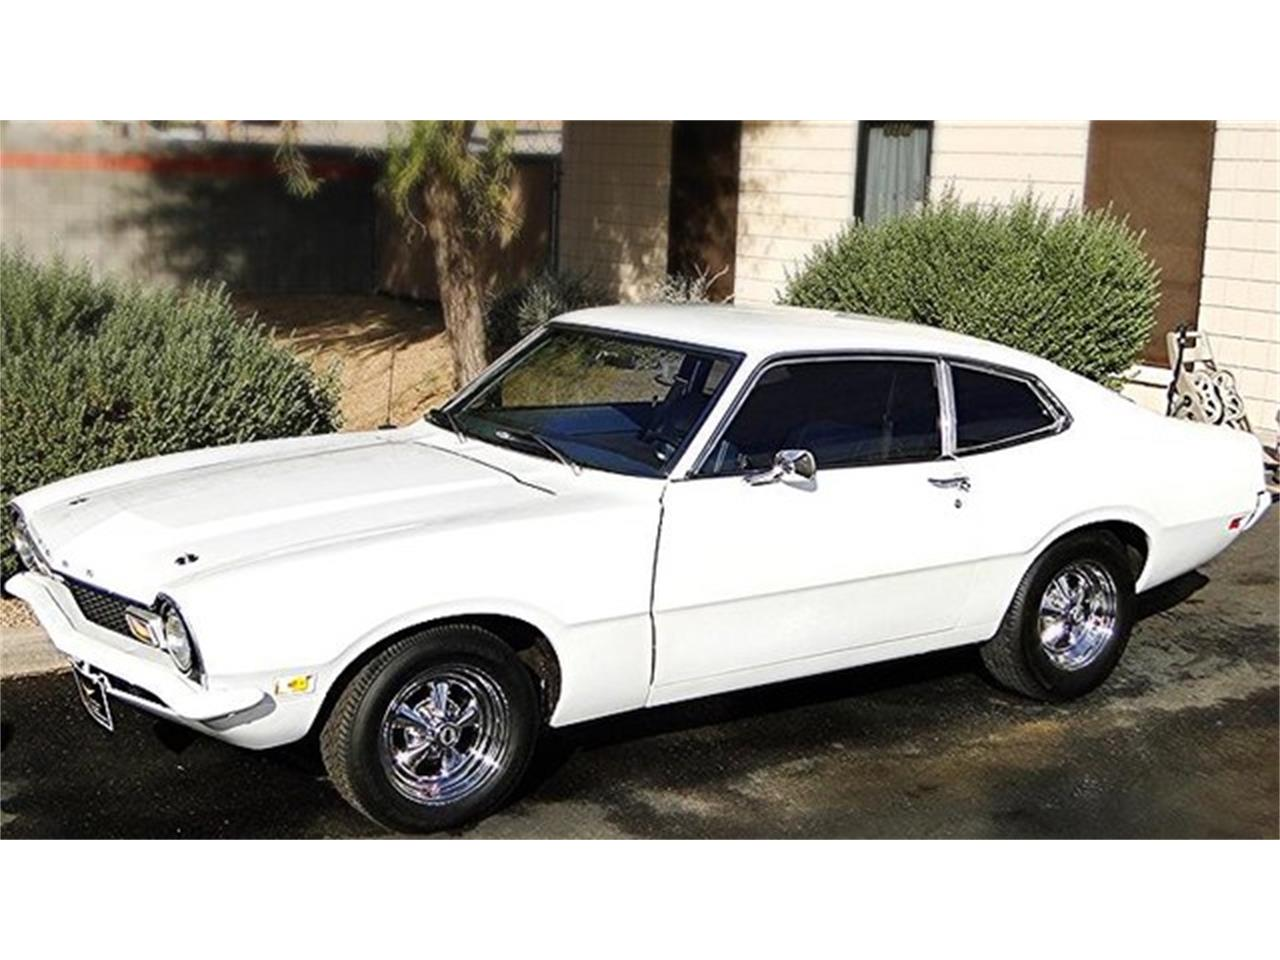 Large Picture of 1976 Ford Maverick - $9,900.00 Offered by Rare Performance Motorcars - DR81